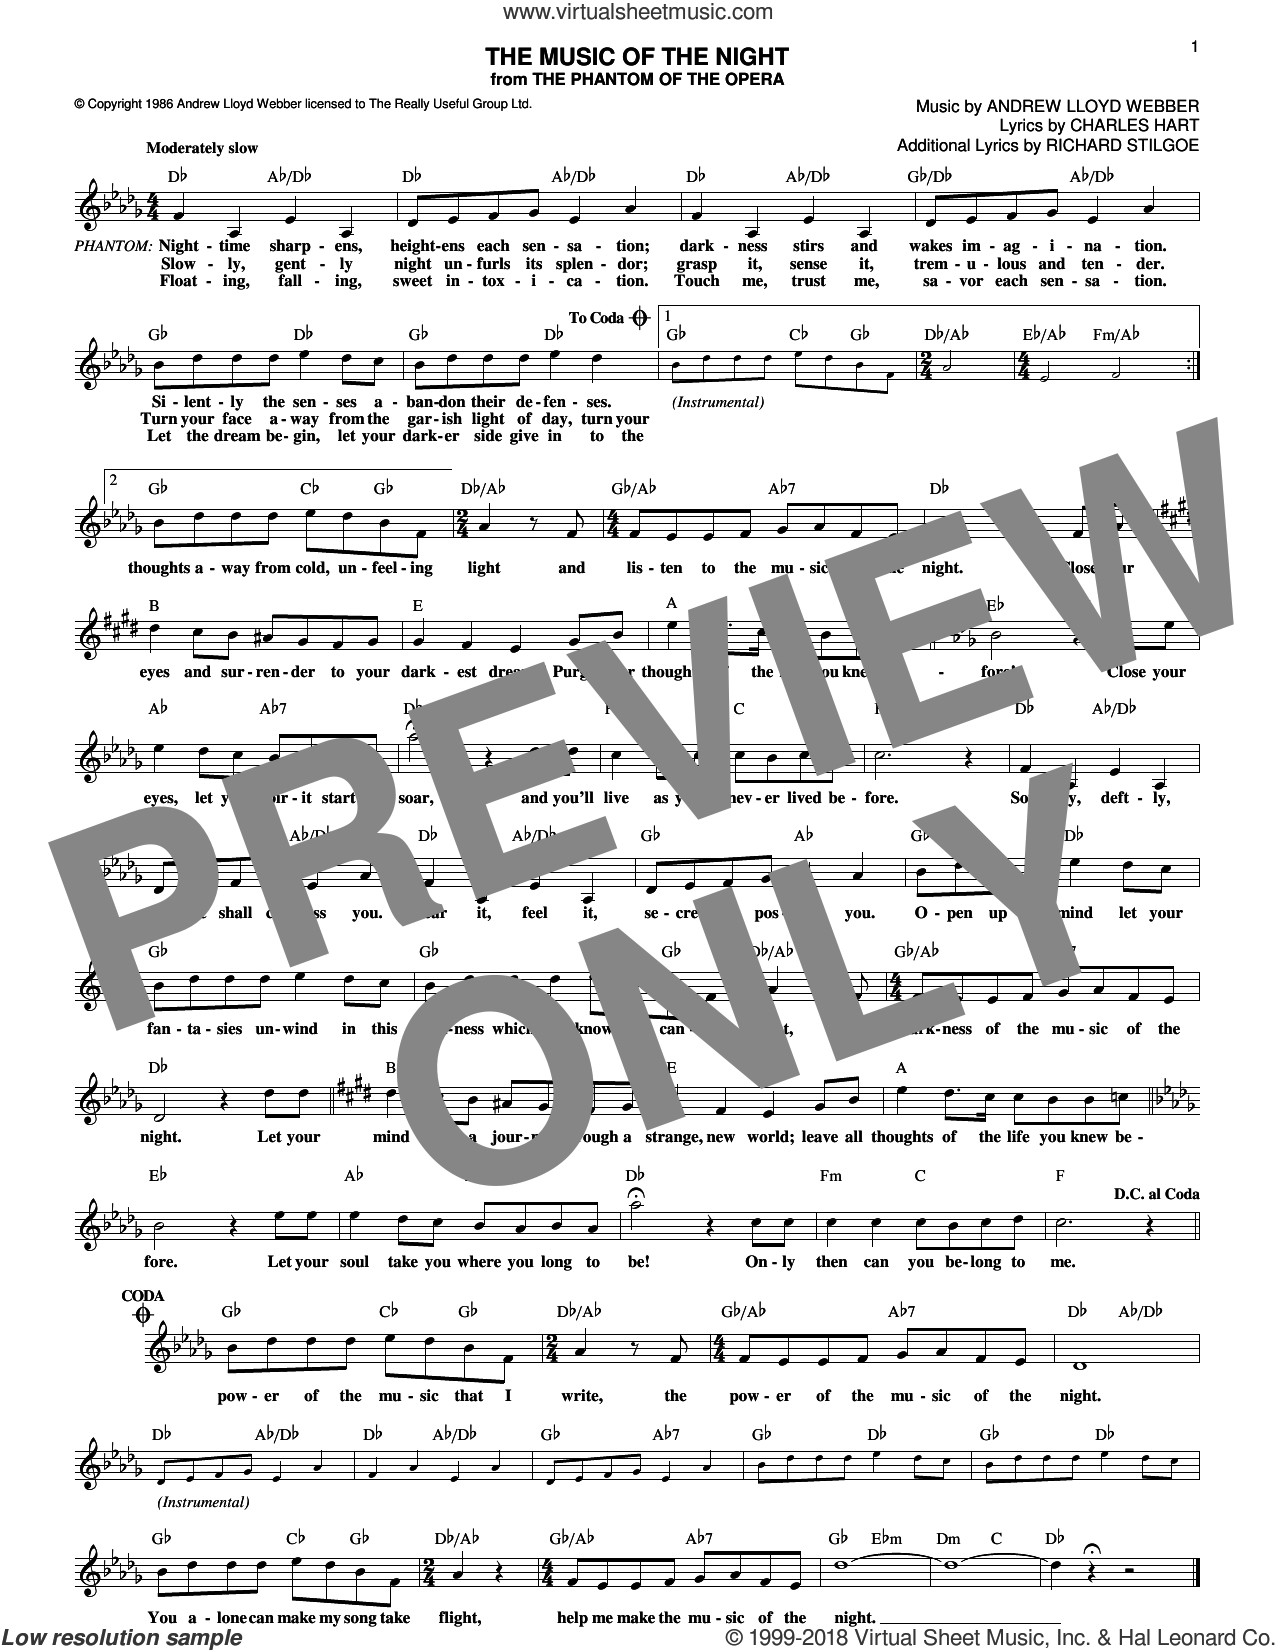 The Music Of The Night (from The Phantom Of The Opera) sheet music for voice and other instruments (fake book) by Andrew Lloyd Webber, David Cook, Charles Hart and Richard Stilgoe, intermediate skill level